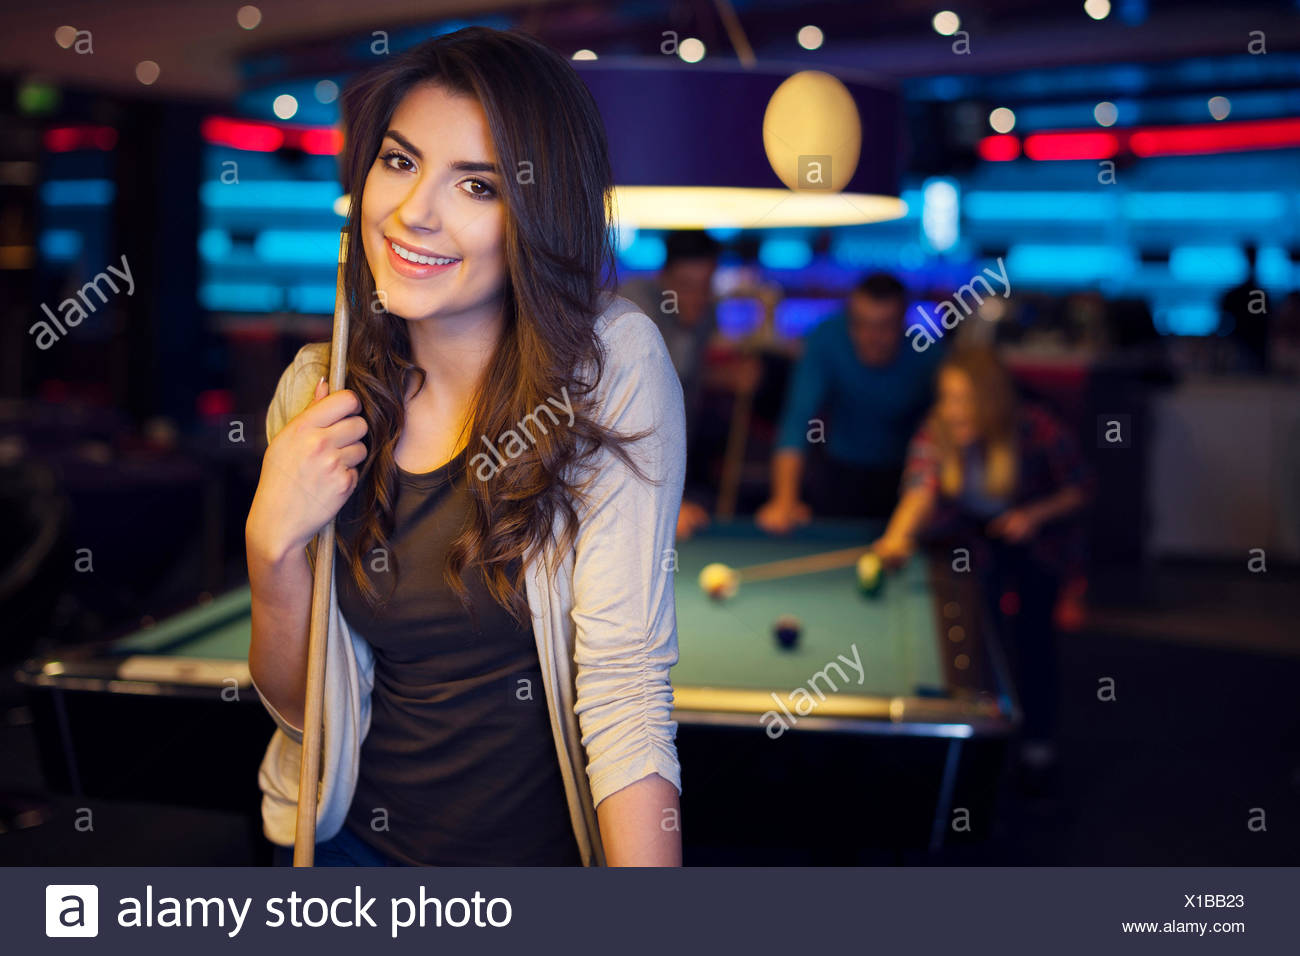 Friends hanging out at the pool hall - Stock Image